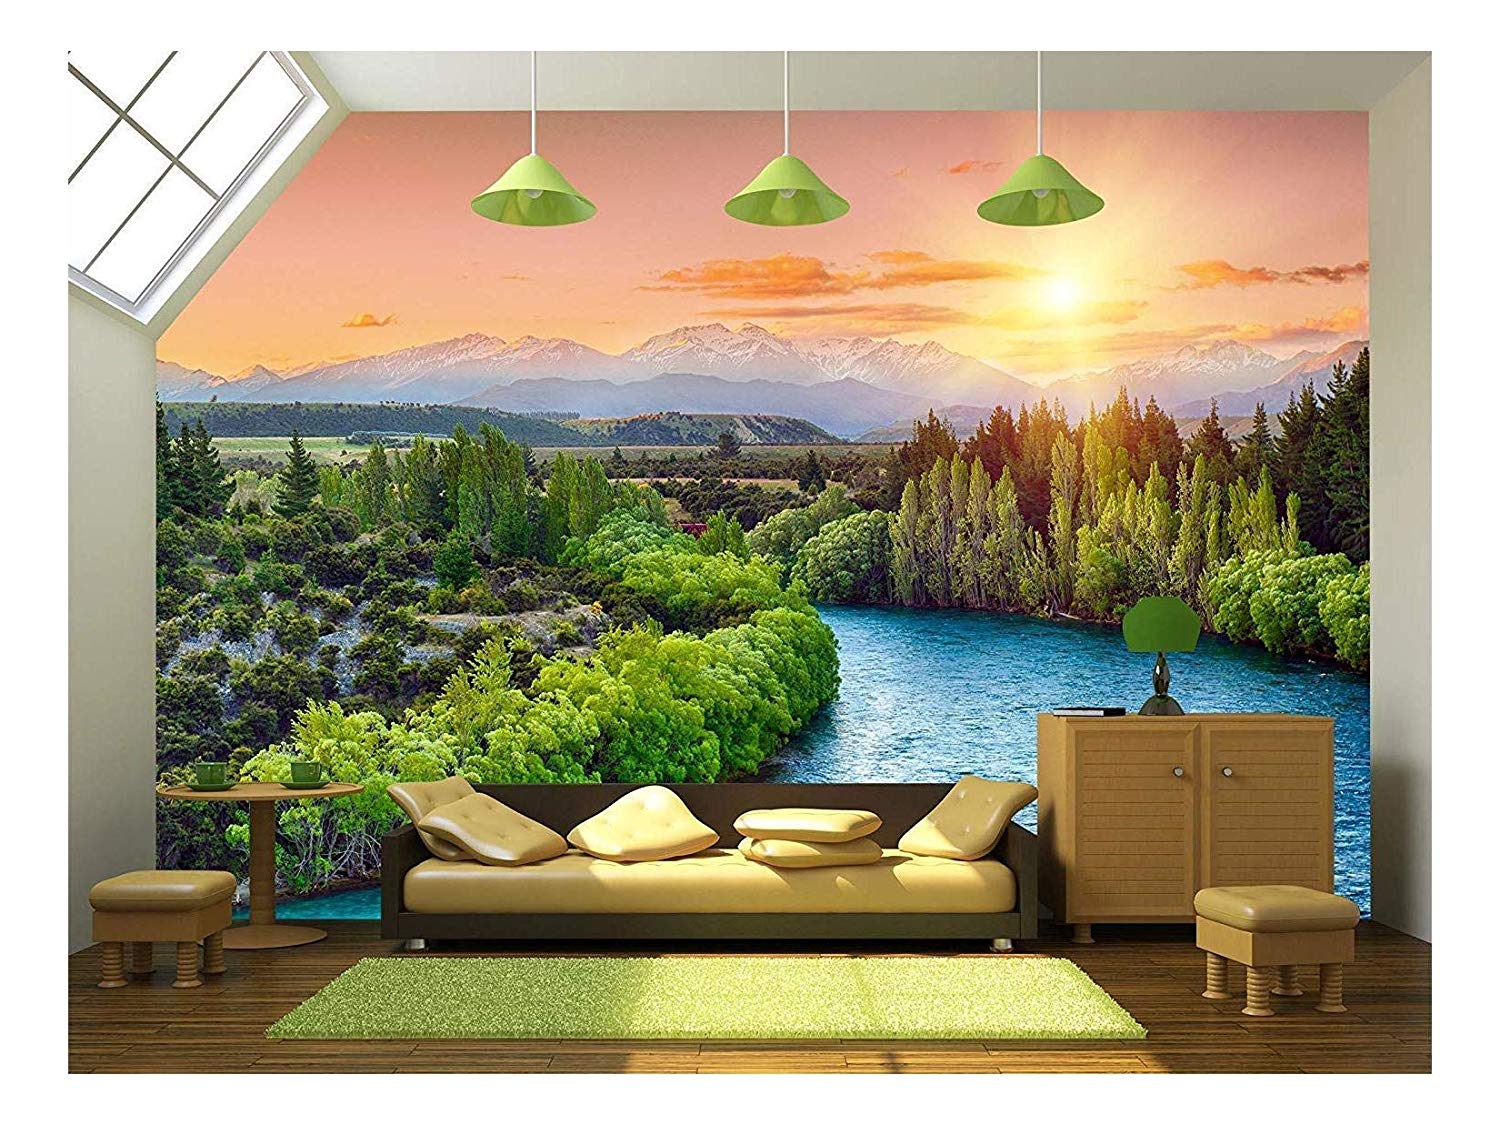 Great wall aerial view Self-adhesive Door sticker Decoration mural Removeable